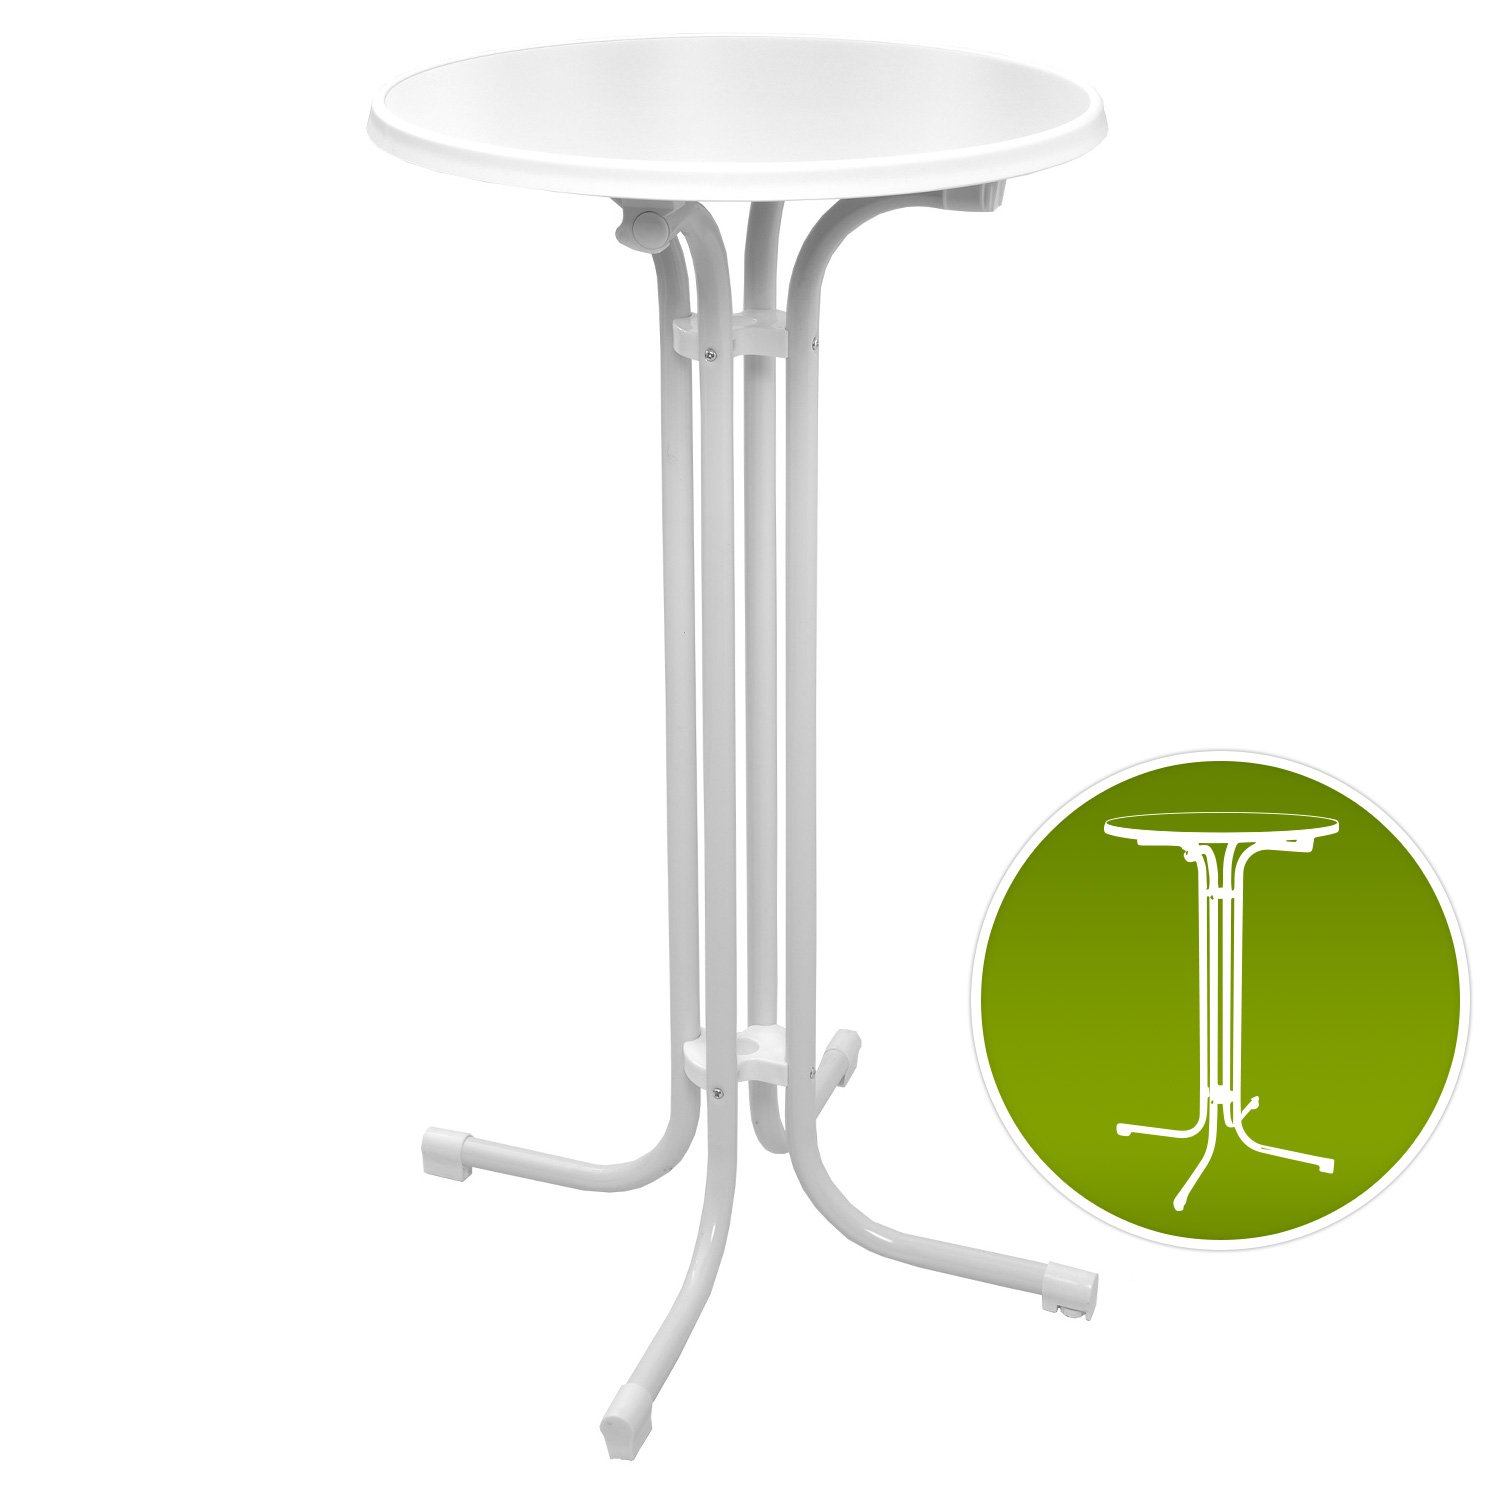 Beautissu Bellini Standing Table 110 cm High Top Bistro Bar Table Folding Round Ø 60 cm White Round Cocktail Poseur